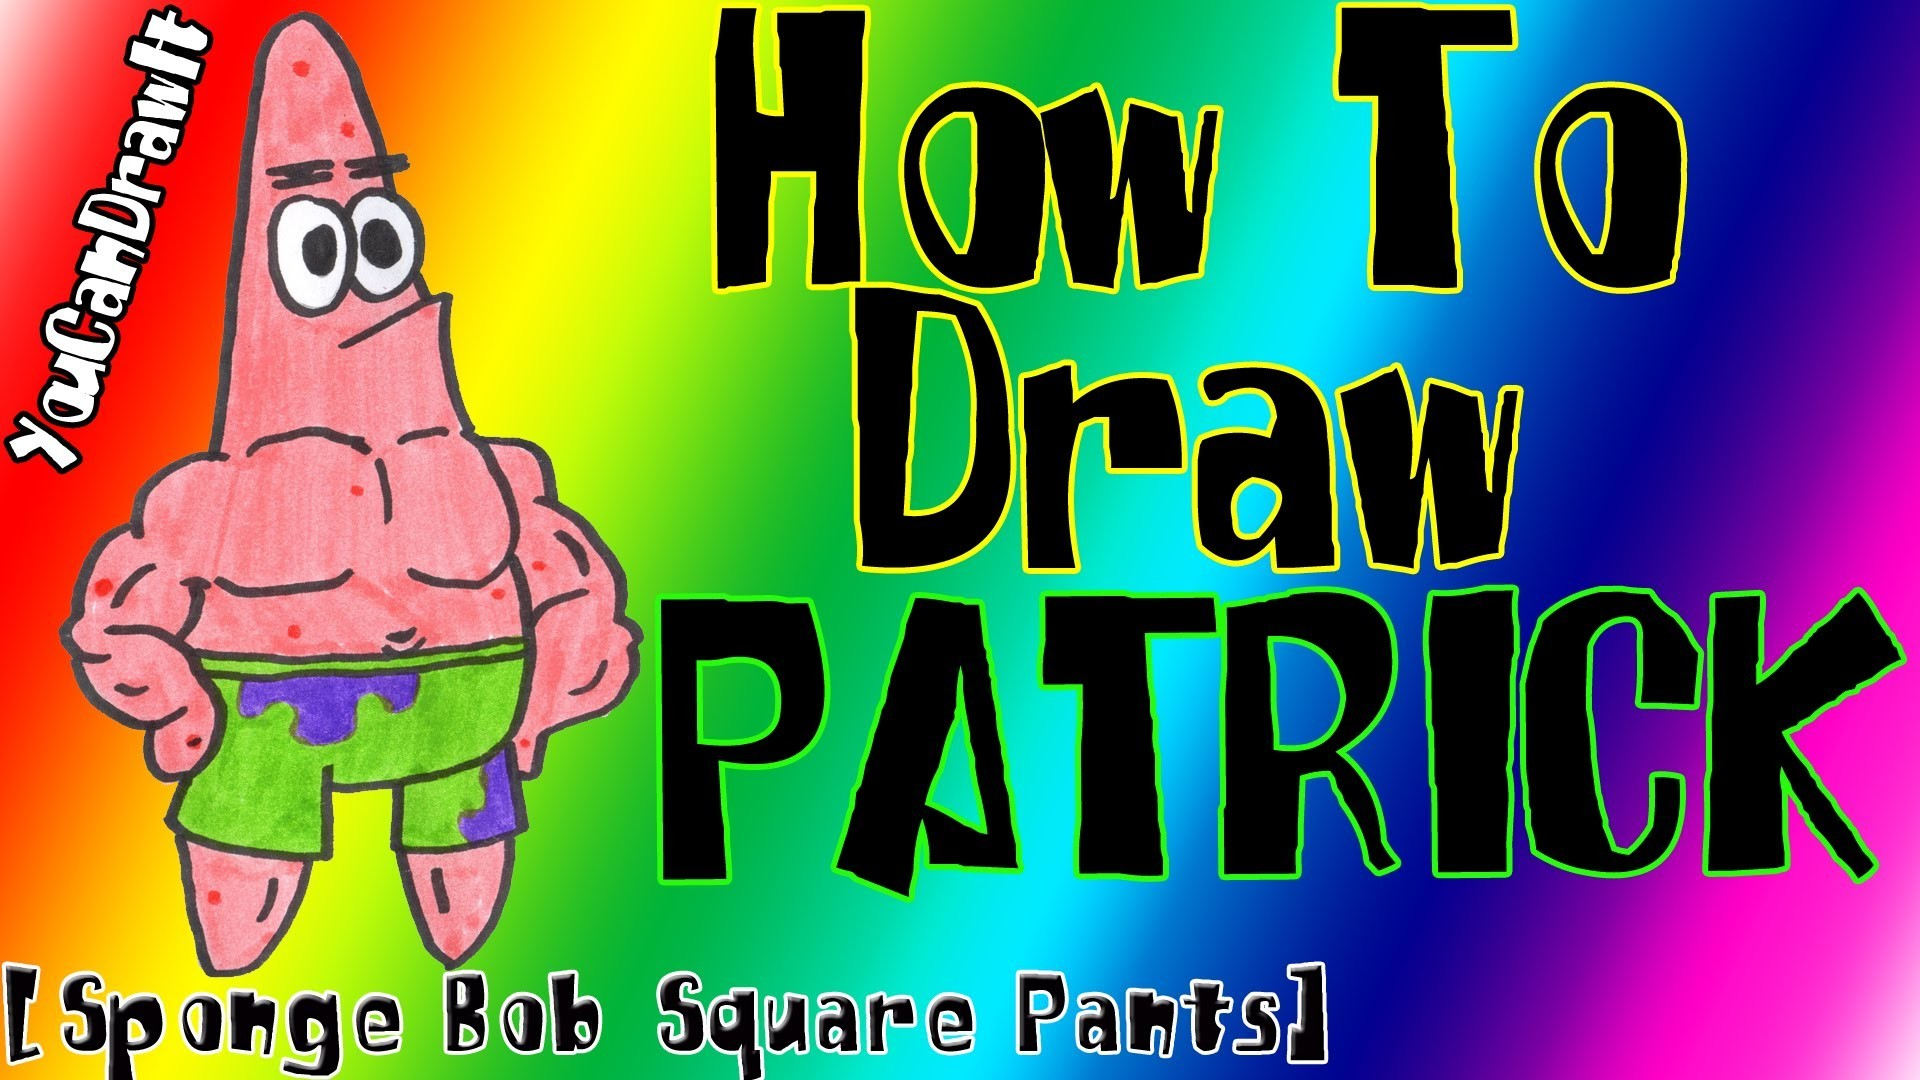 How To Draw Patrick Star from Sponge Bob Square Pants ✎ YouCanDrawIt ツ  1080p HD